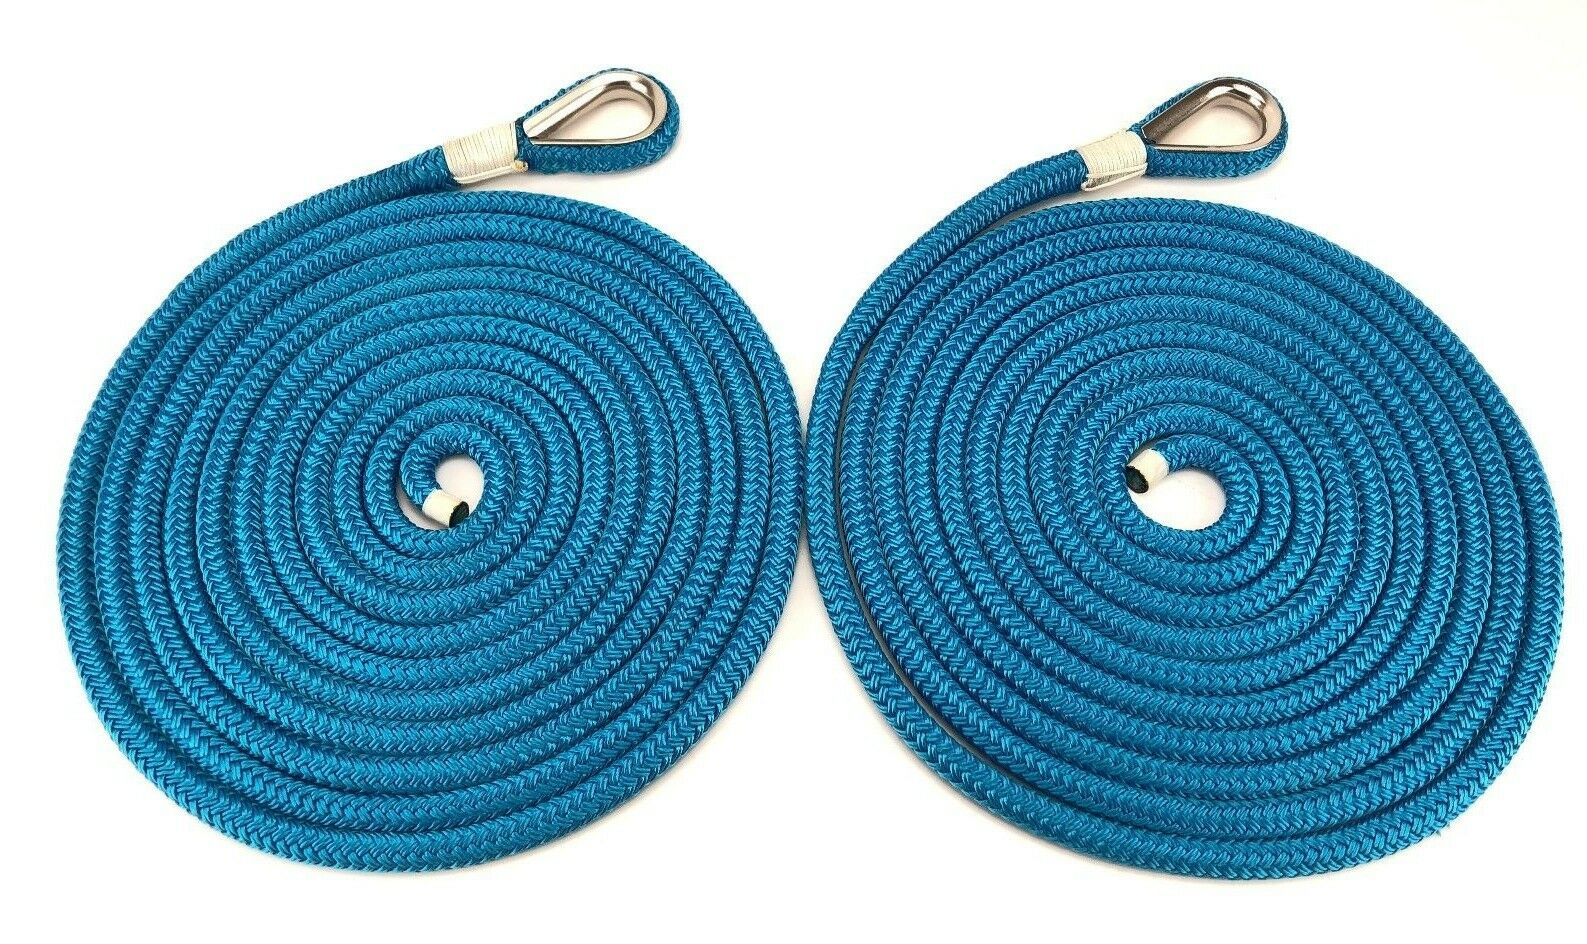 14mm Royal bluee Double Braid Polyester Mooring Ropes, 2 x 6 Mts, Stainless Eye